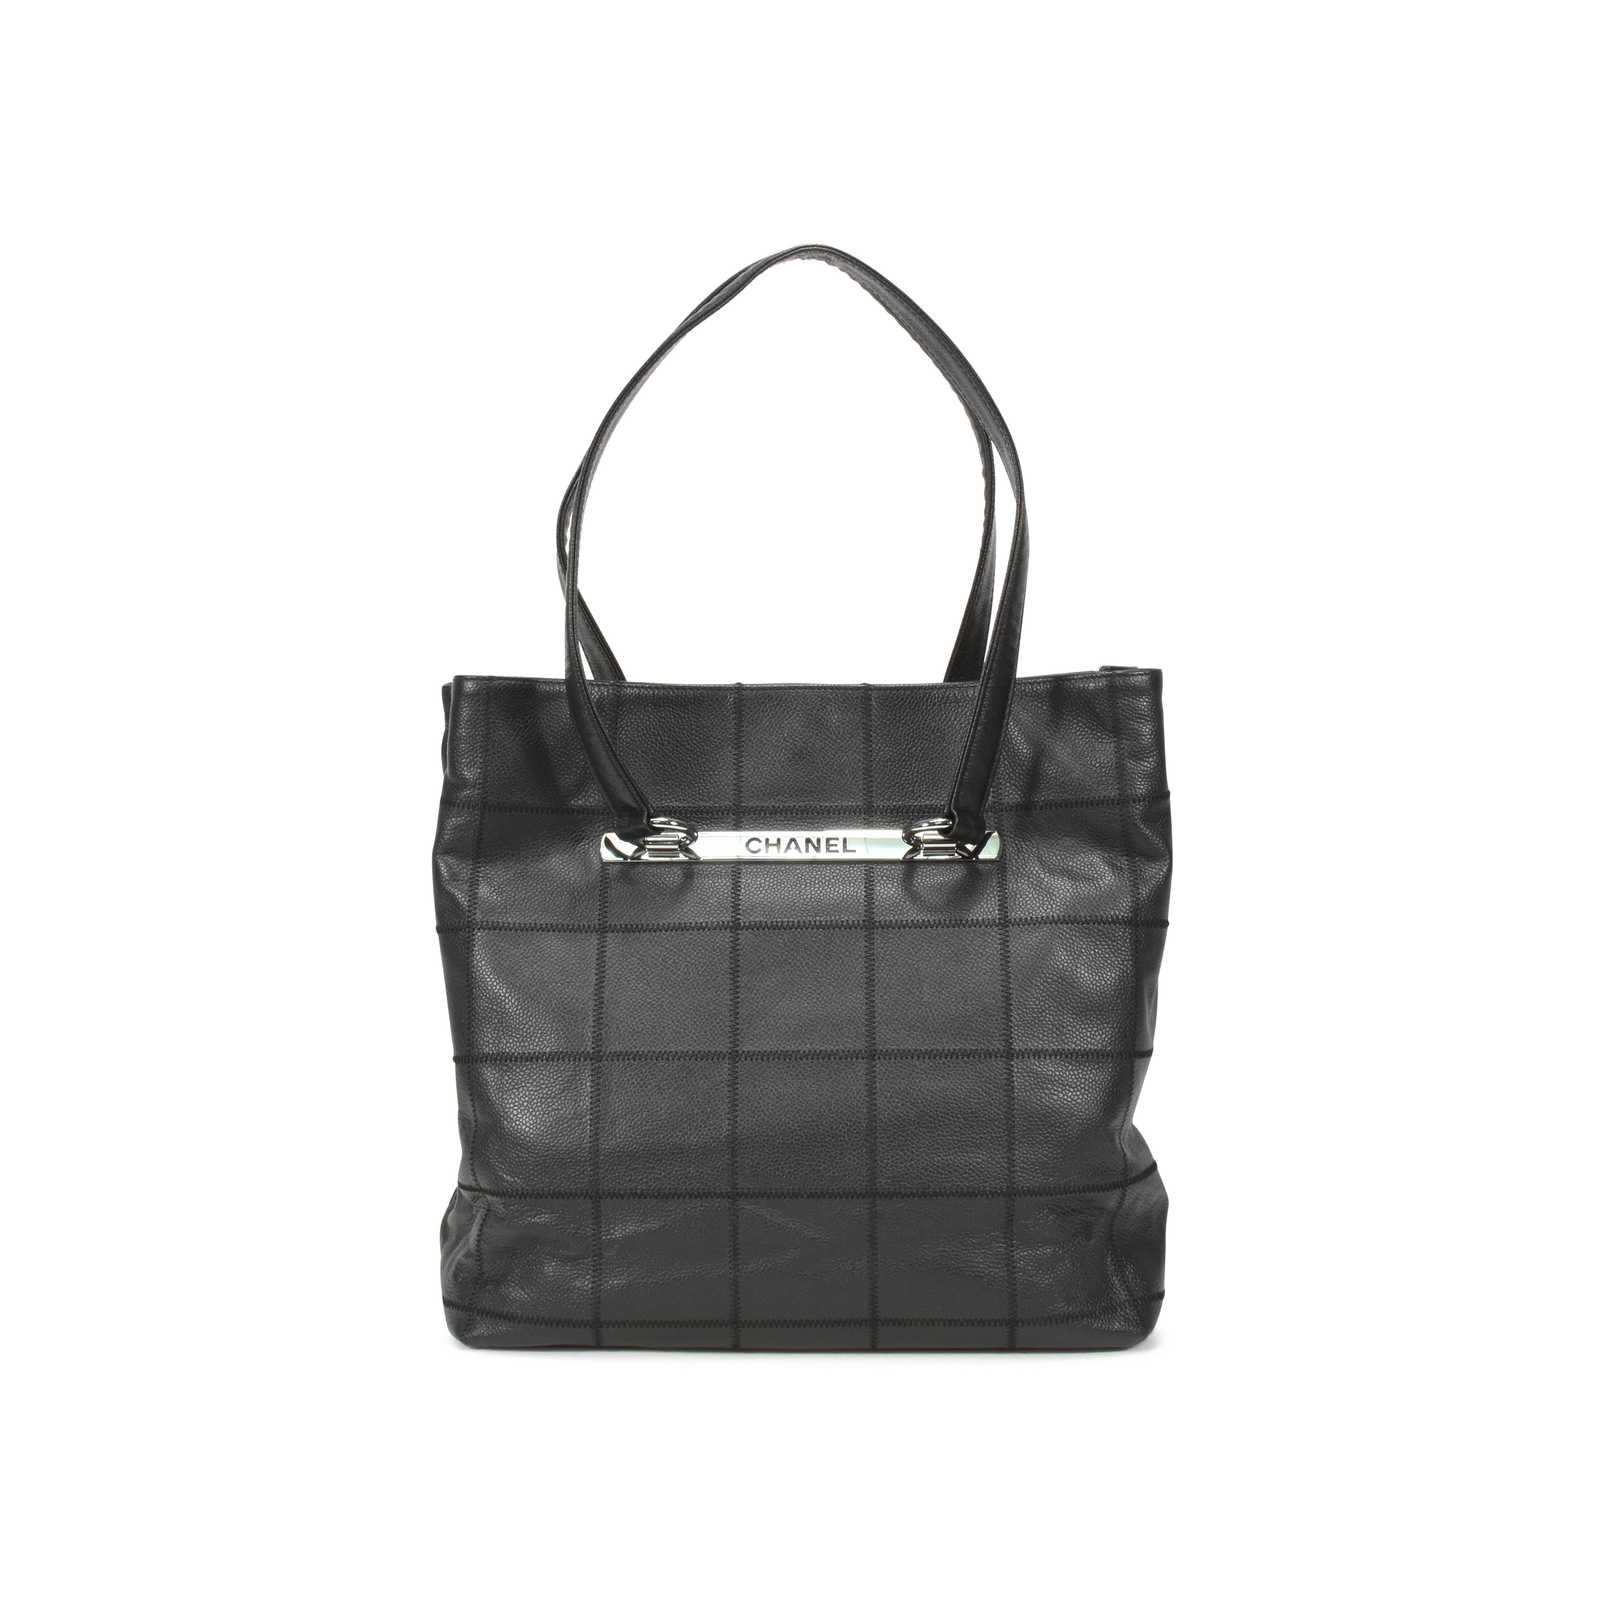 aa4cc0cf5 Authentic Second Hand Chanel Caviar Square Quilted Tote Bag (PSS-126-00017)  ...